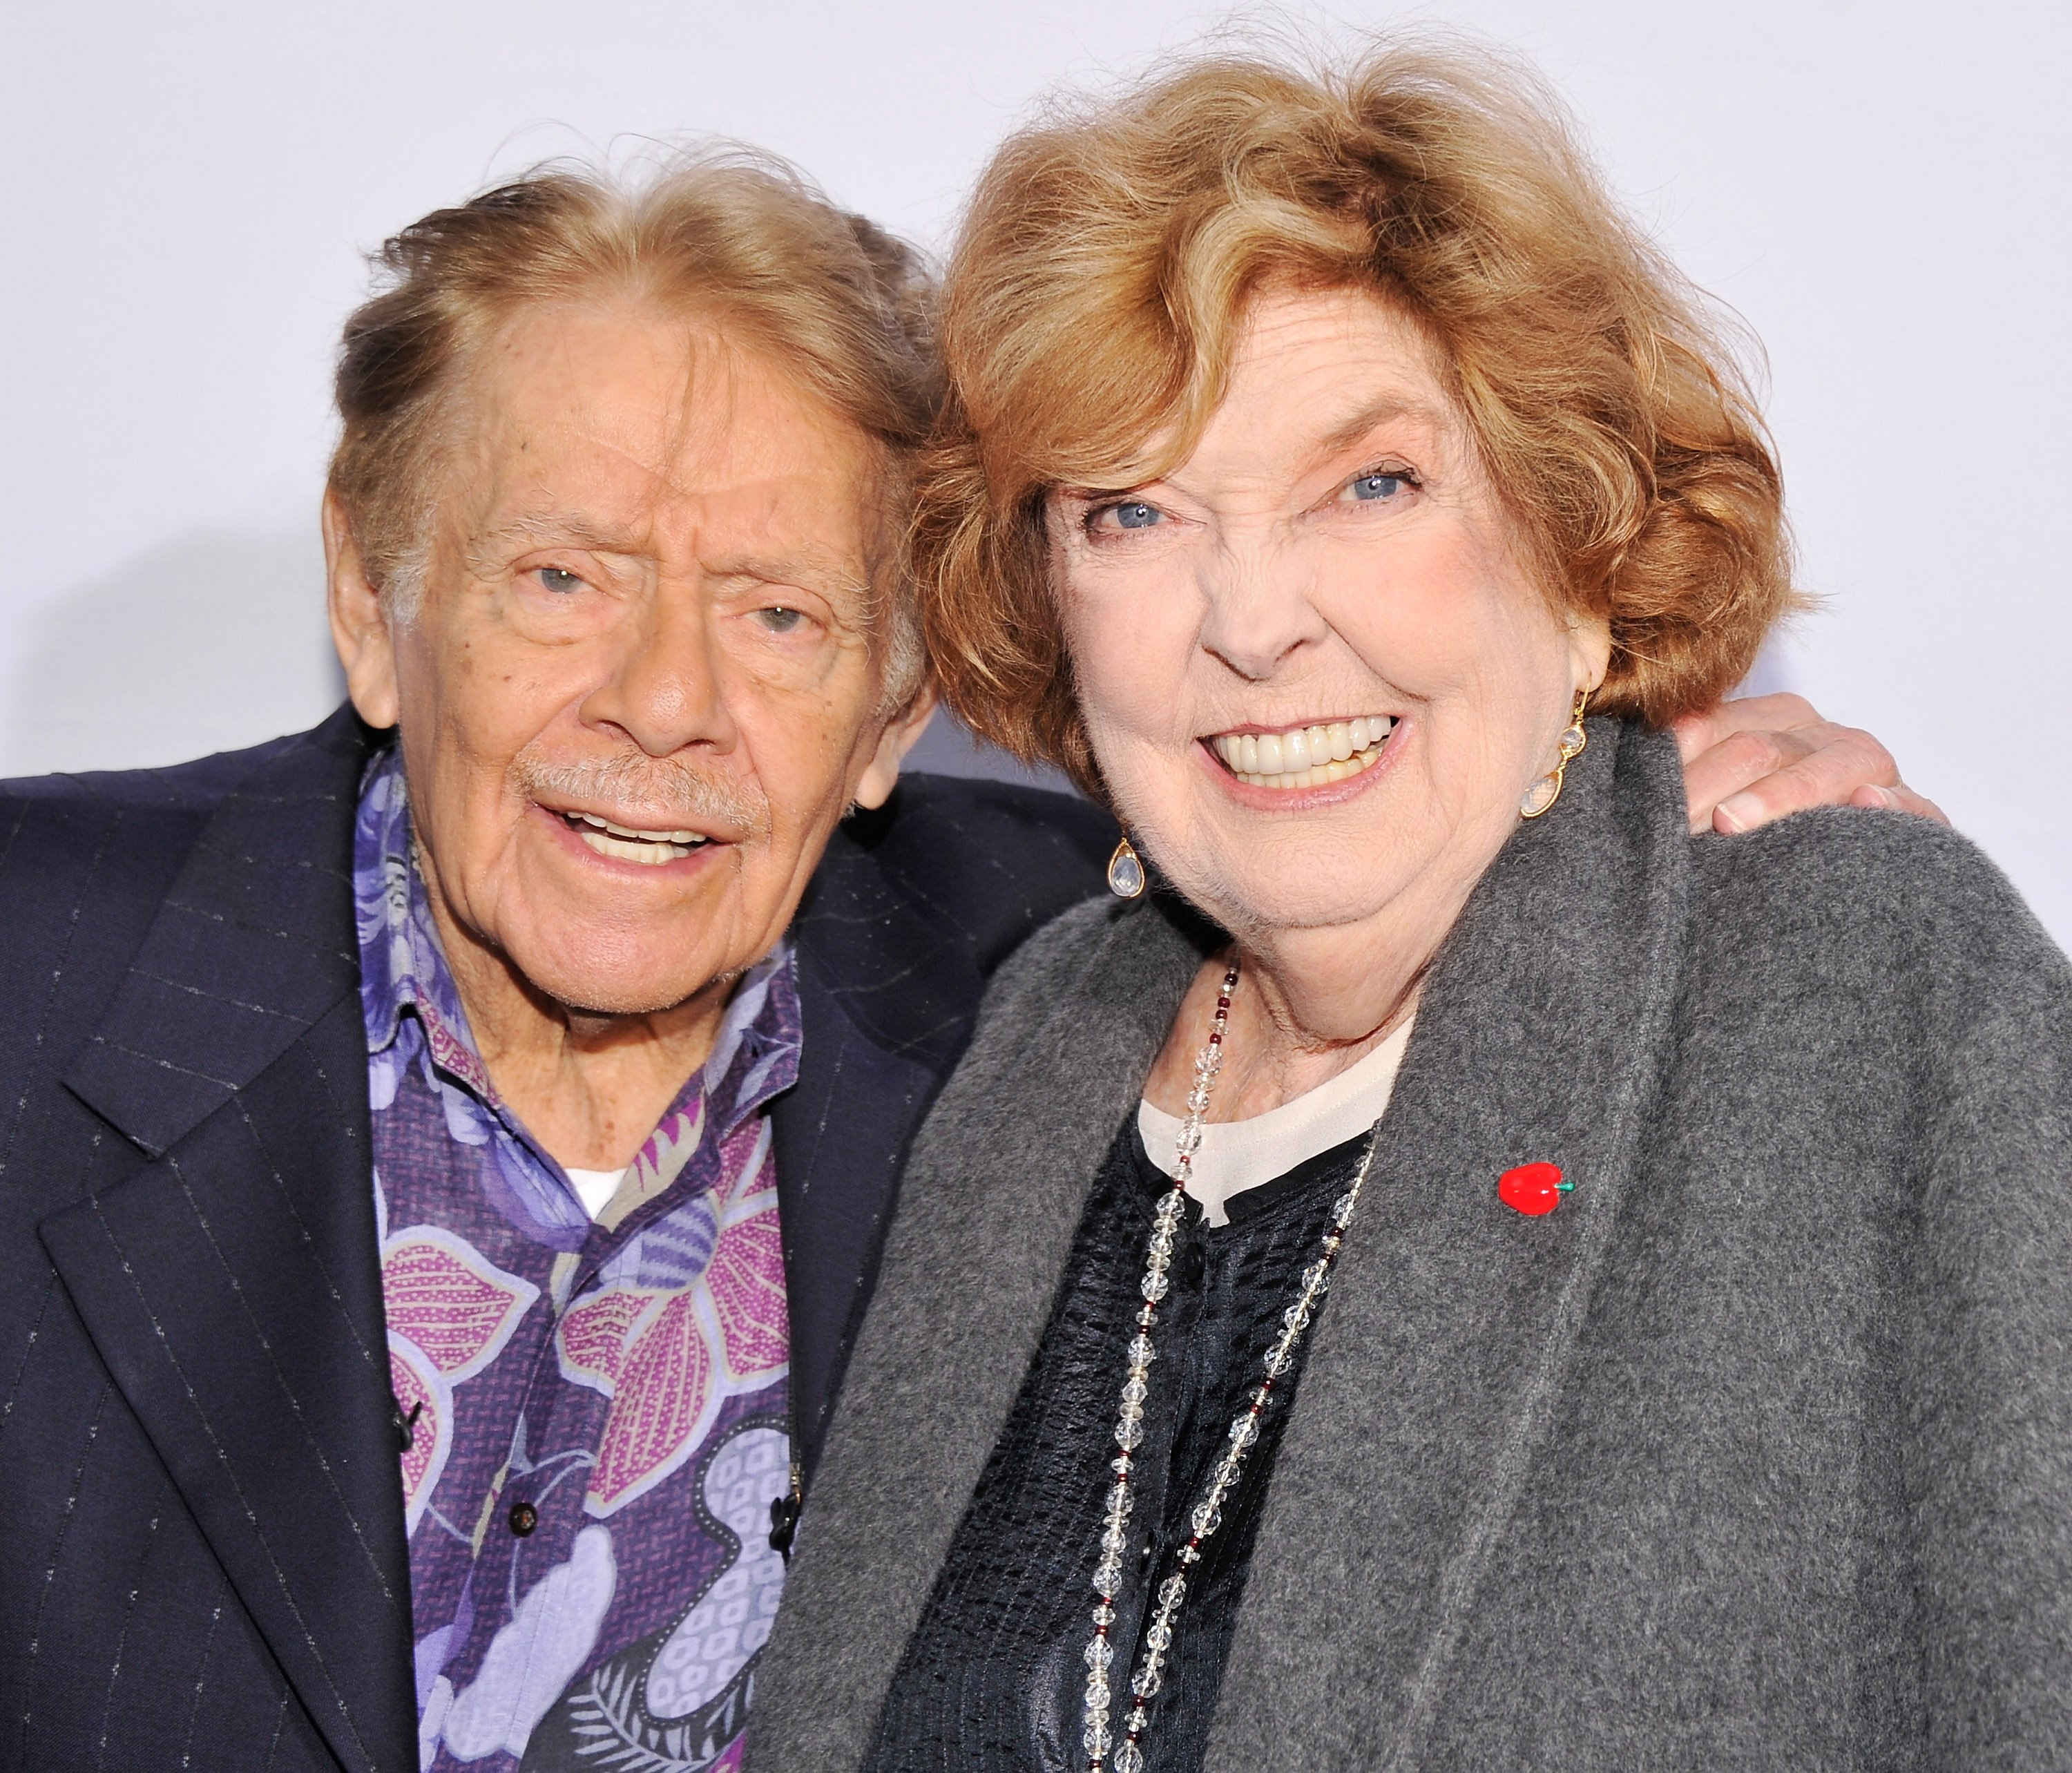 Jerry Stiller and Anne Meara attend the 2012 Made In NY Awards. | Source: Getty Images